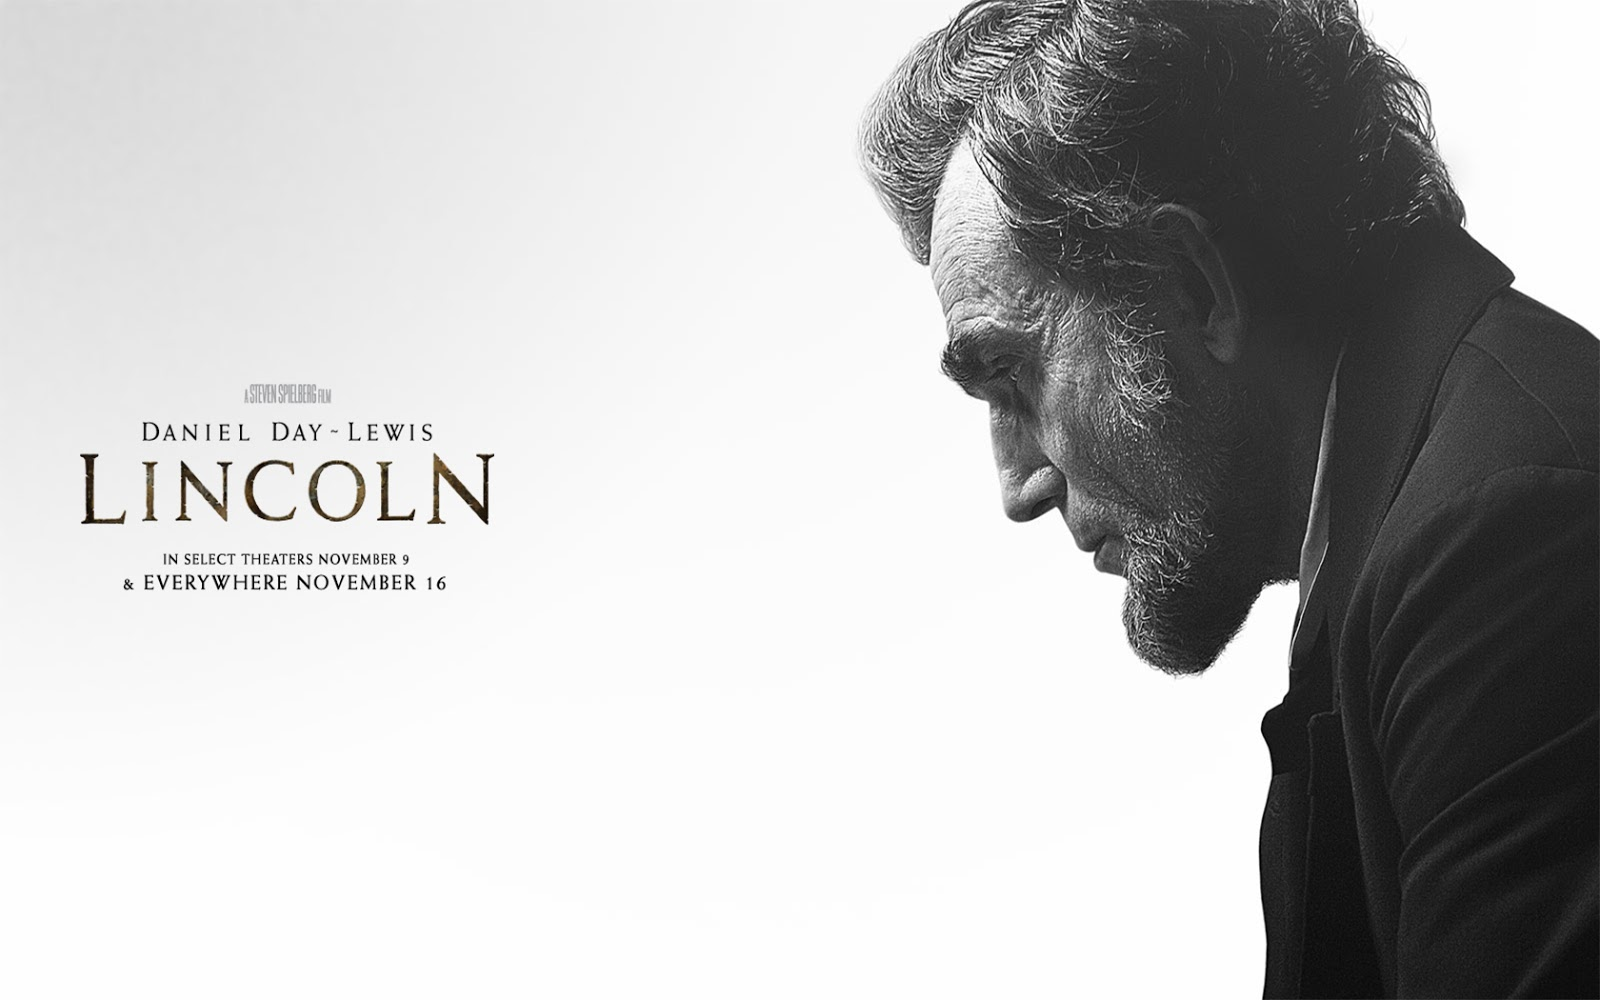 lincoln-cartaz-filme-2012